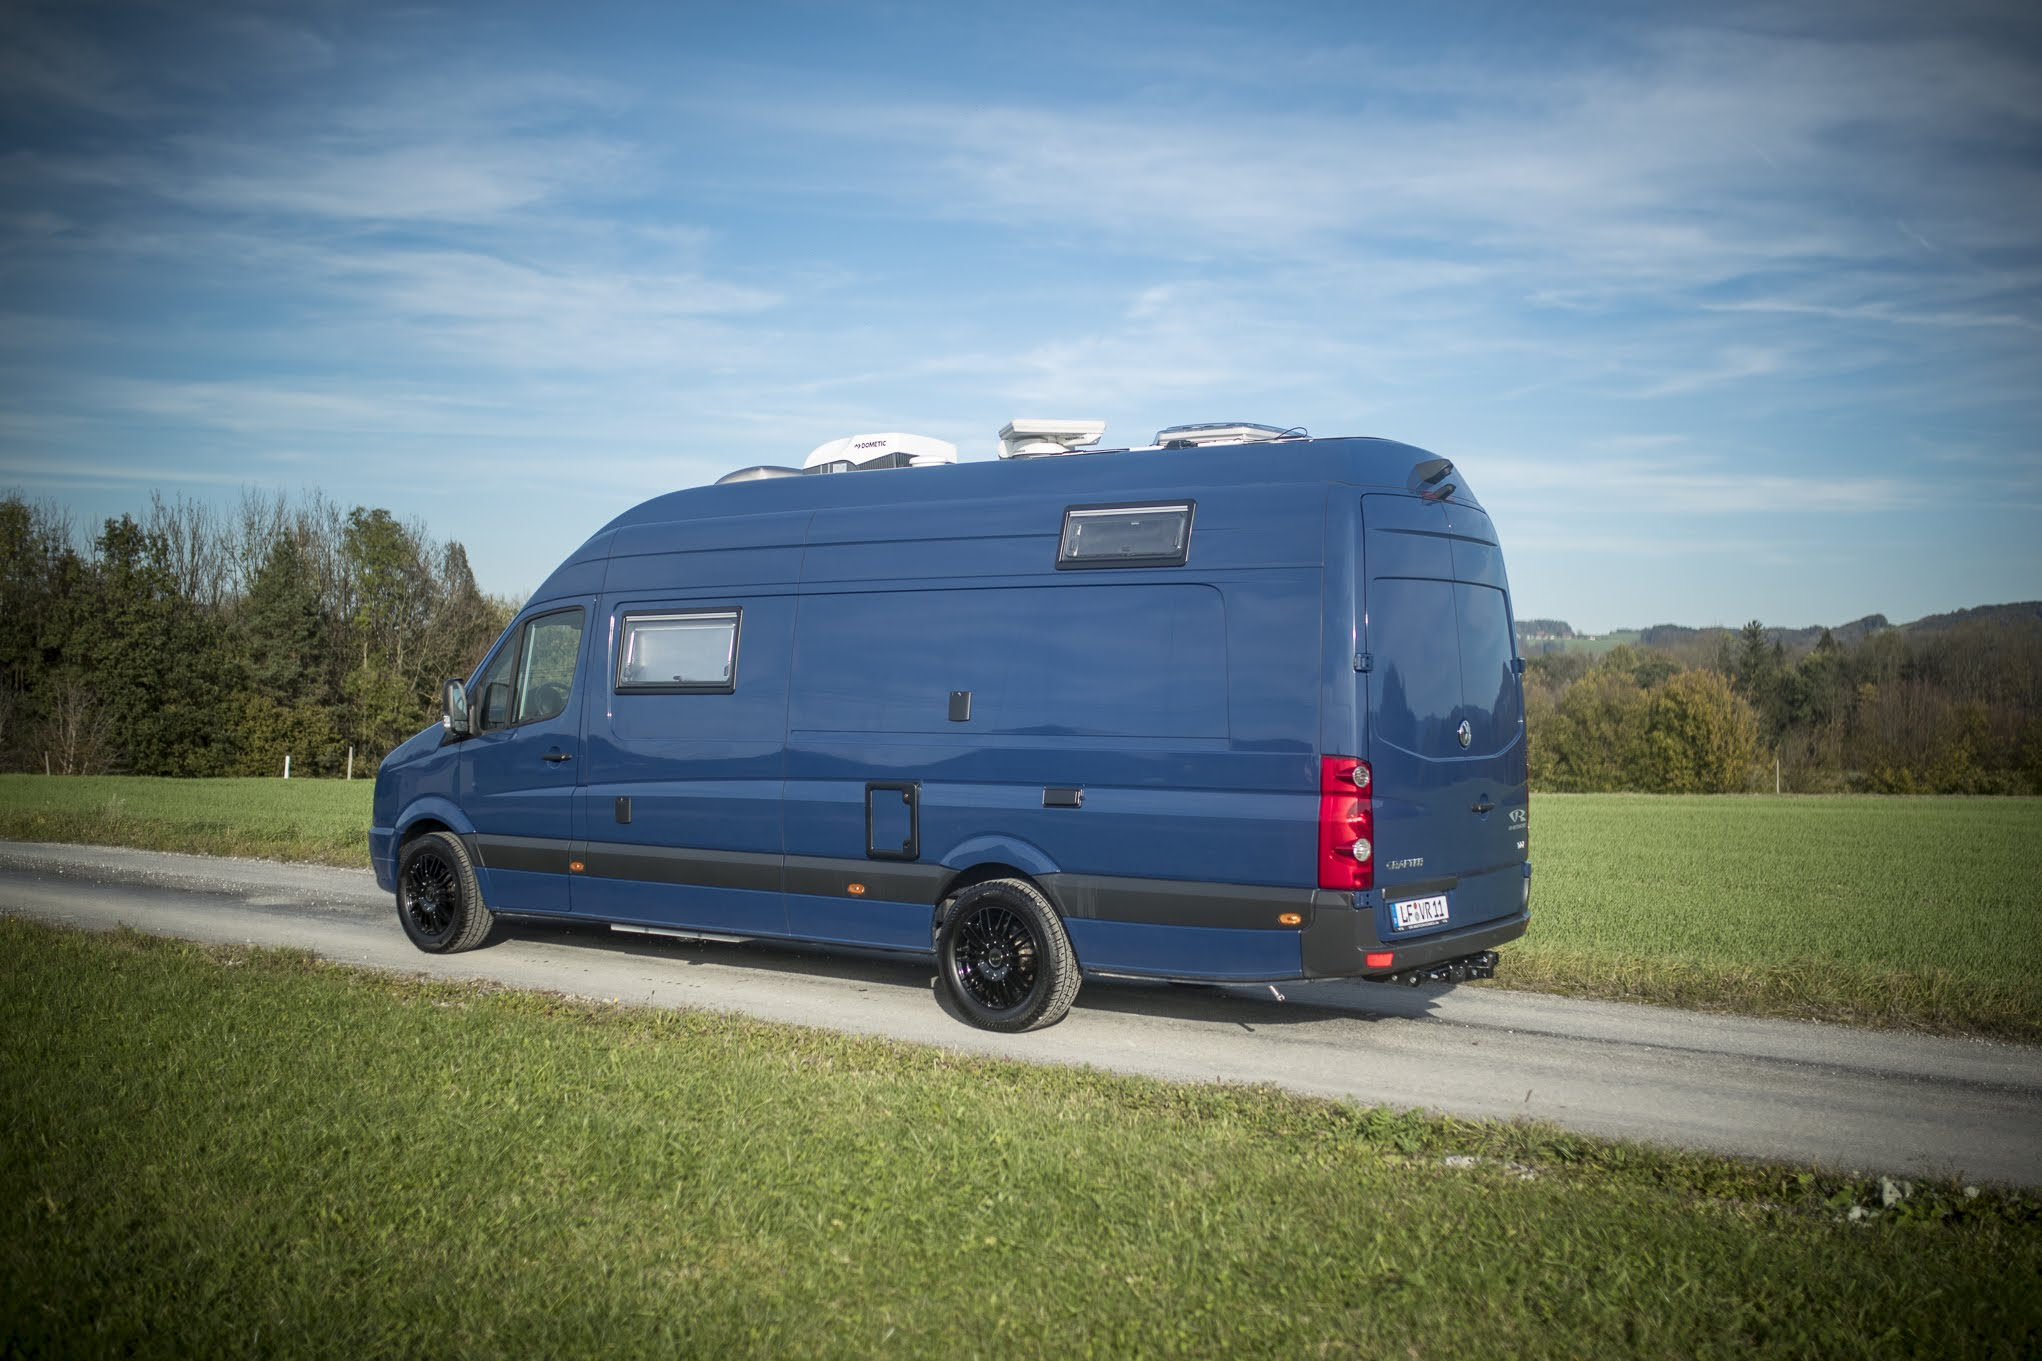 VR kastenwagen camper renntransporter racecamper luxus edition blueedition crafter VW daimler sprinter